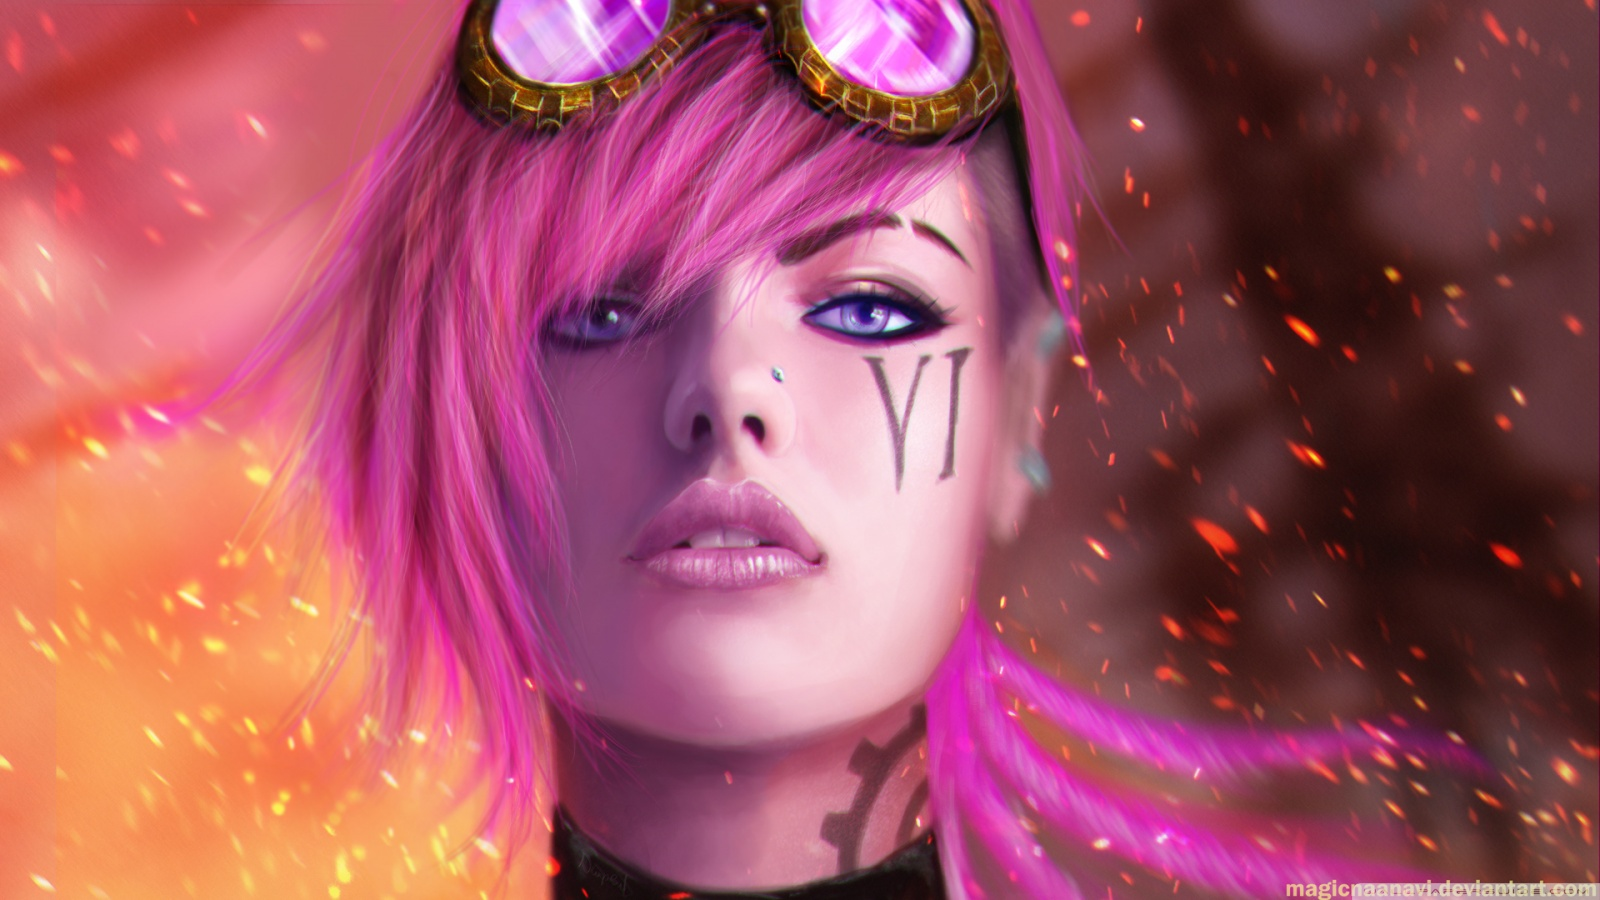 vi_the_piltover_enforcer___league_of_legends-wallpaper-1600x900.jpg